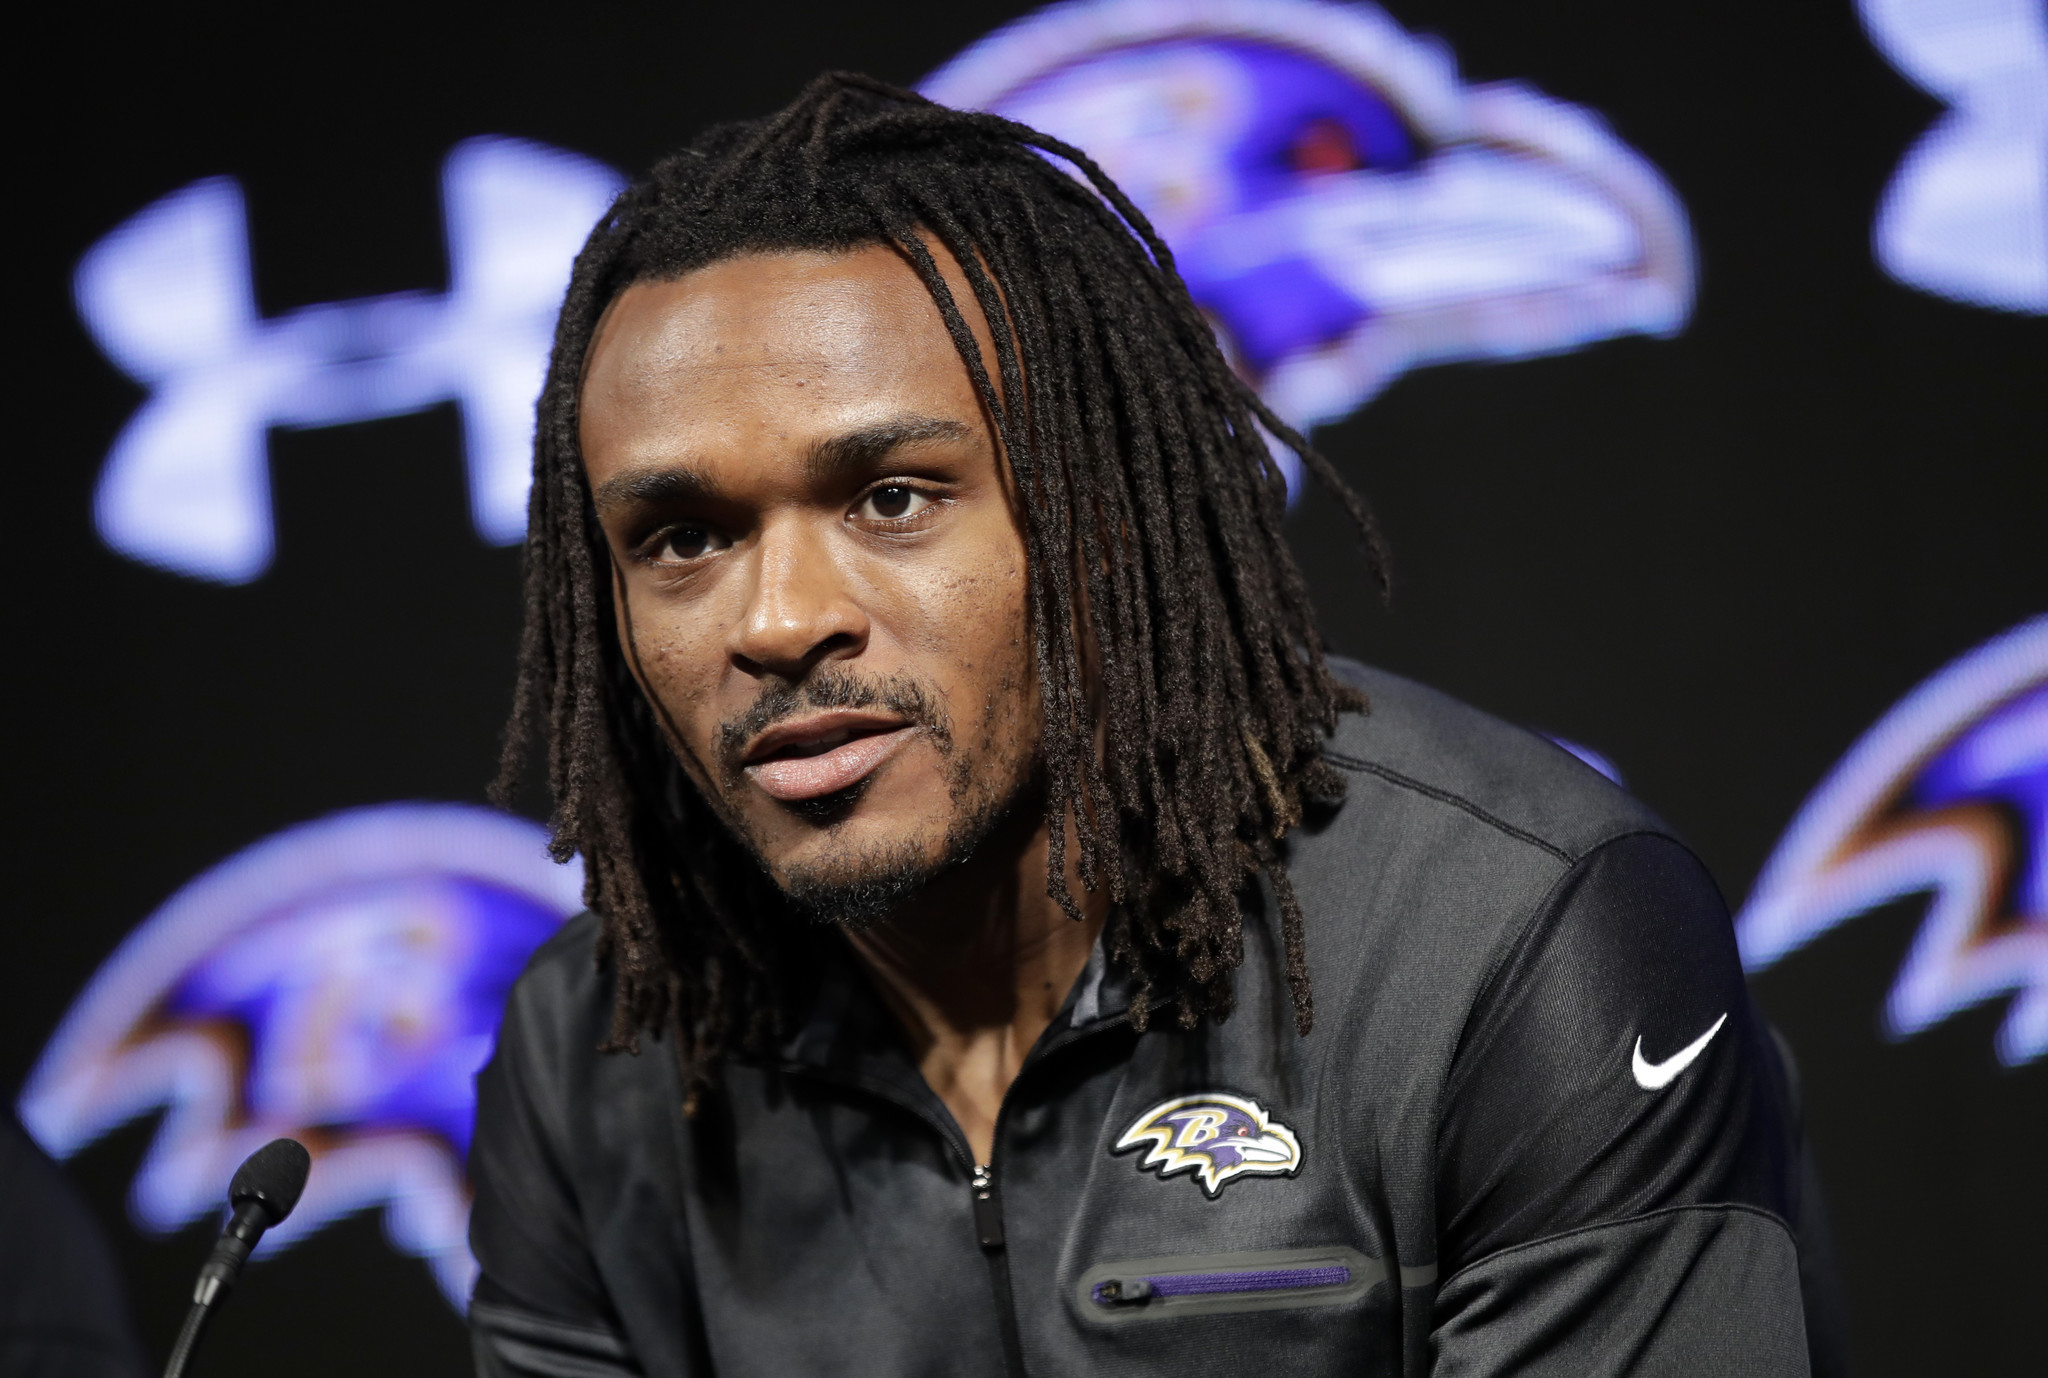 Bal-new-cornerback-brandon-carr-sees-ravens-as-perfect-fit-20170320